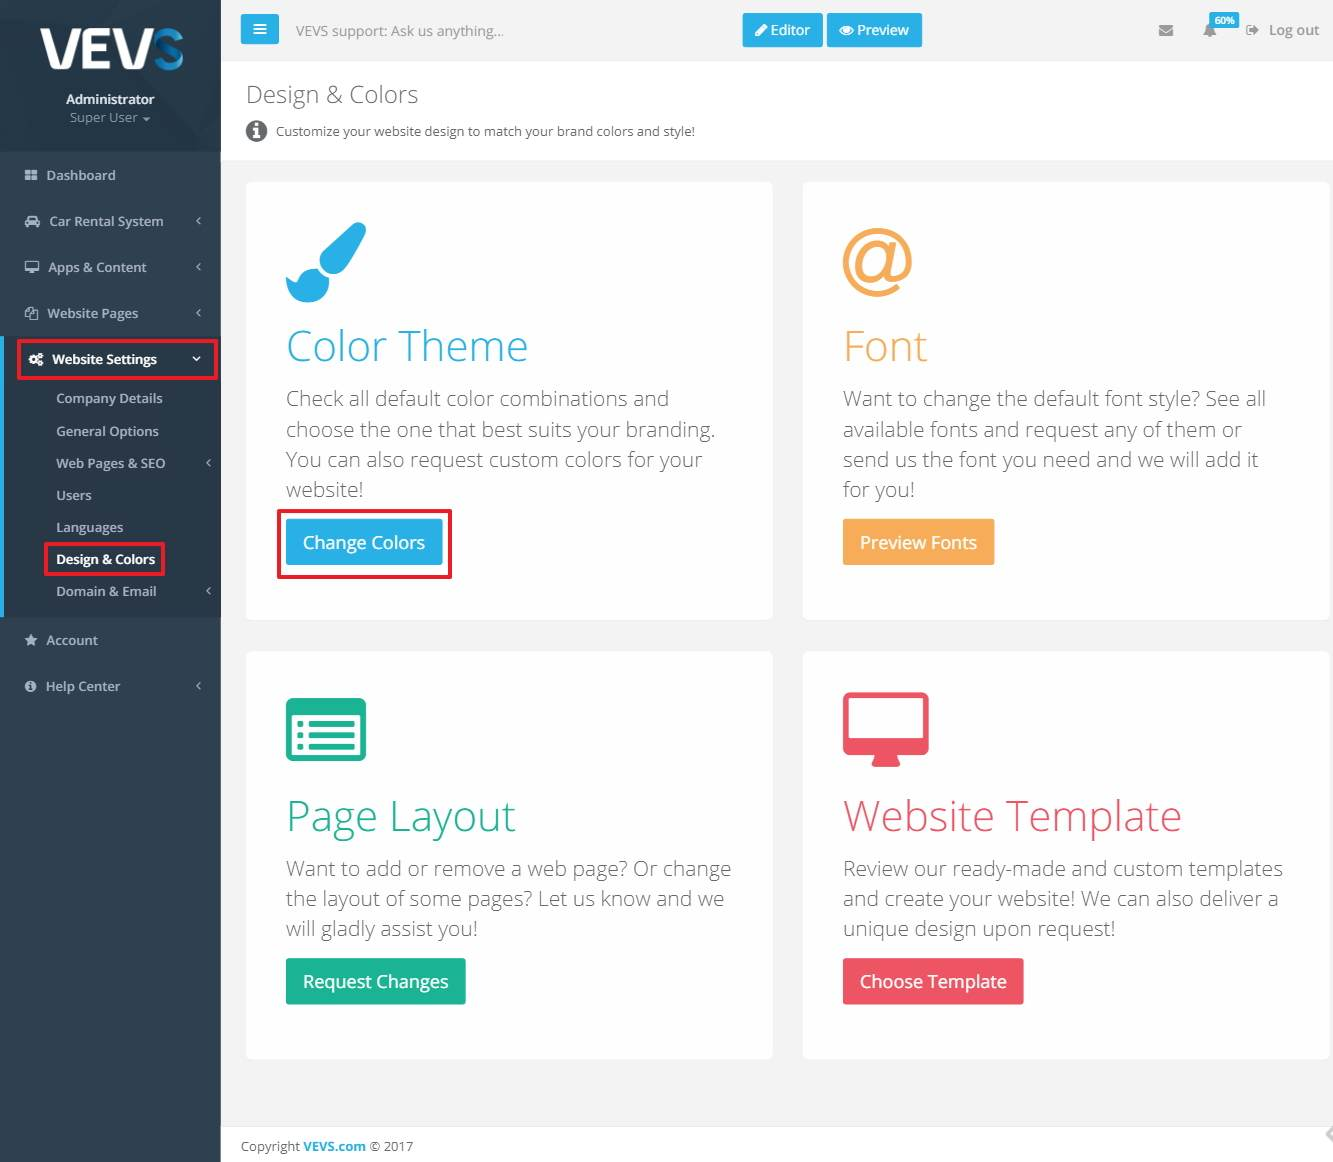 VEVS website change color theme